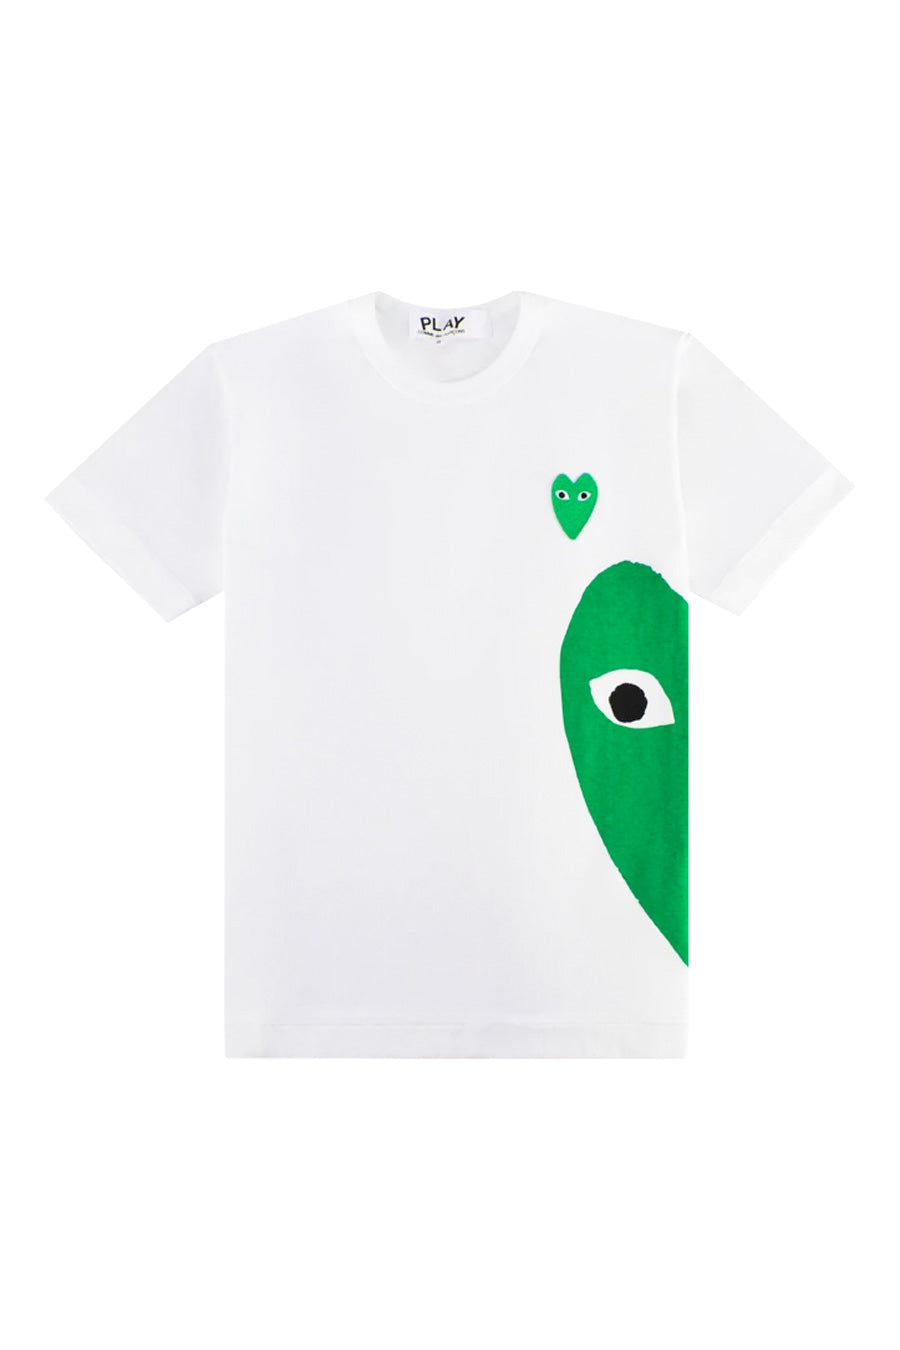 Comme des Garçons PLAY - White Green Side Heart T-Shirt